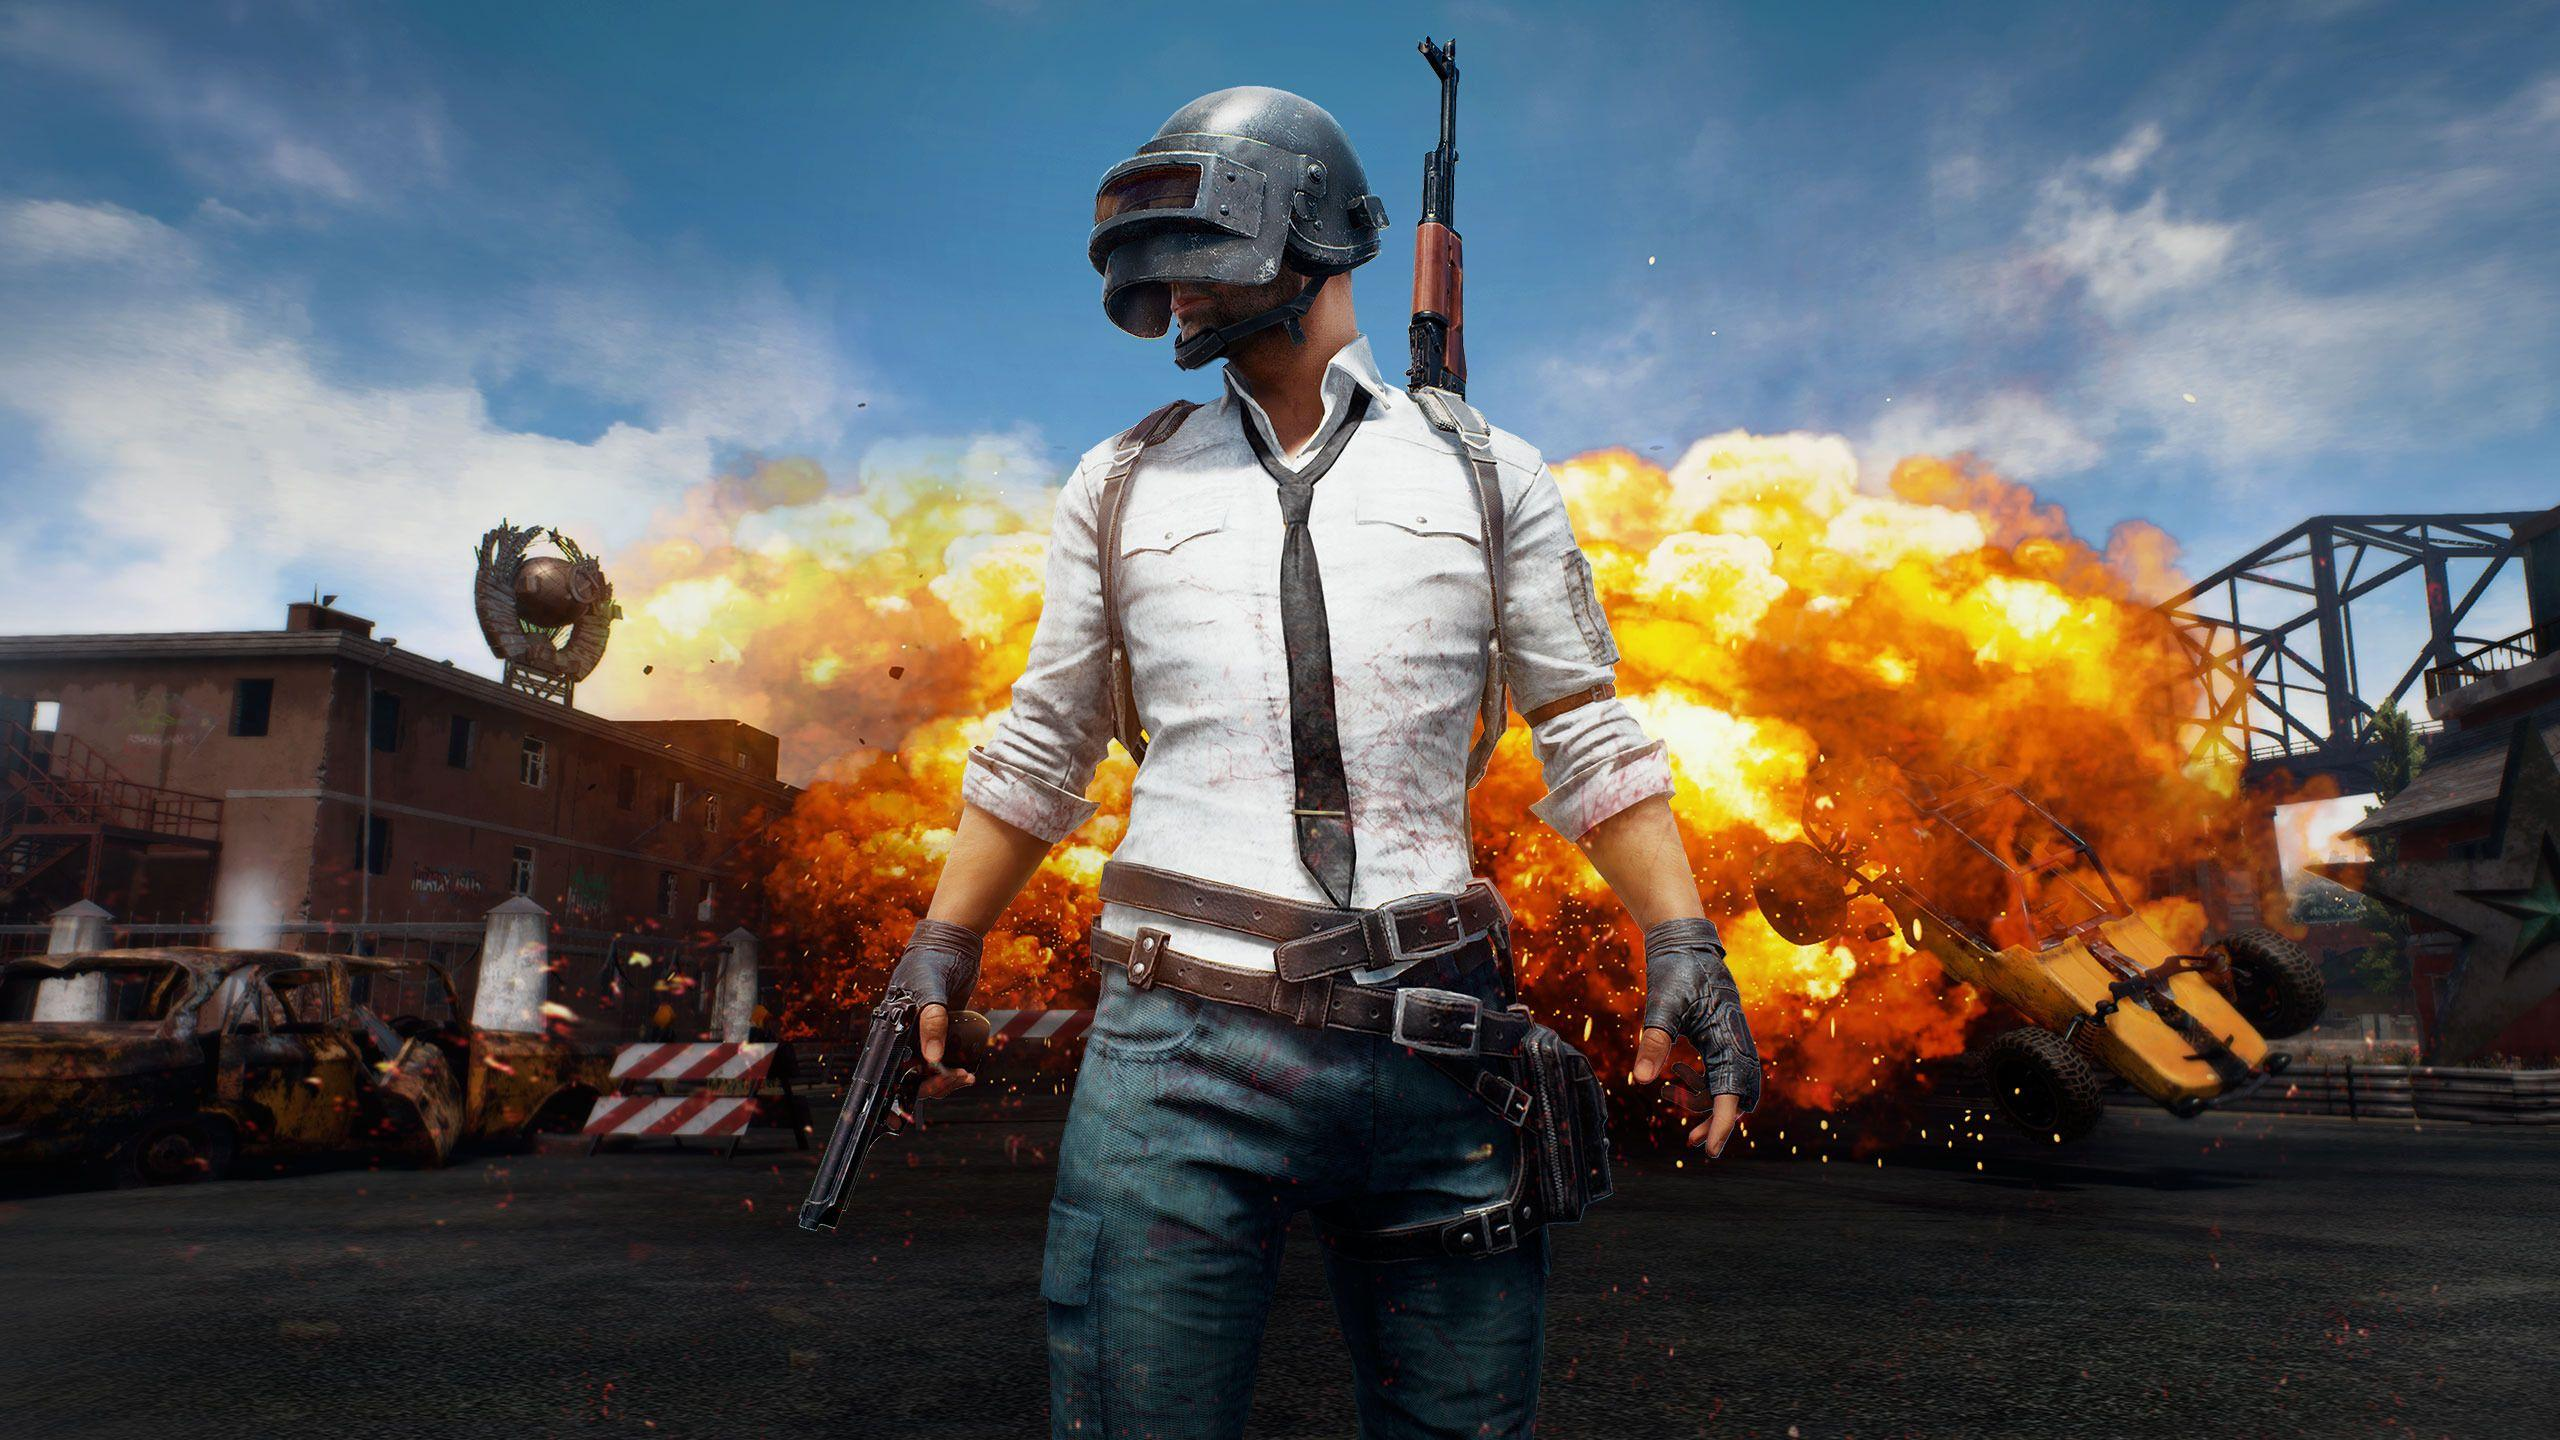 Pubg Wallpaper Windows 7: PUBG 4K Wallpapers